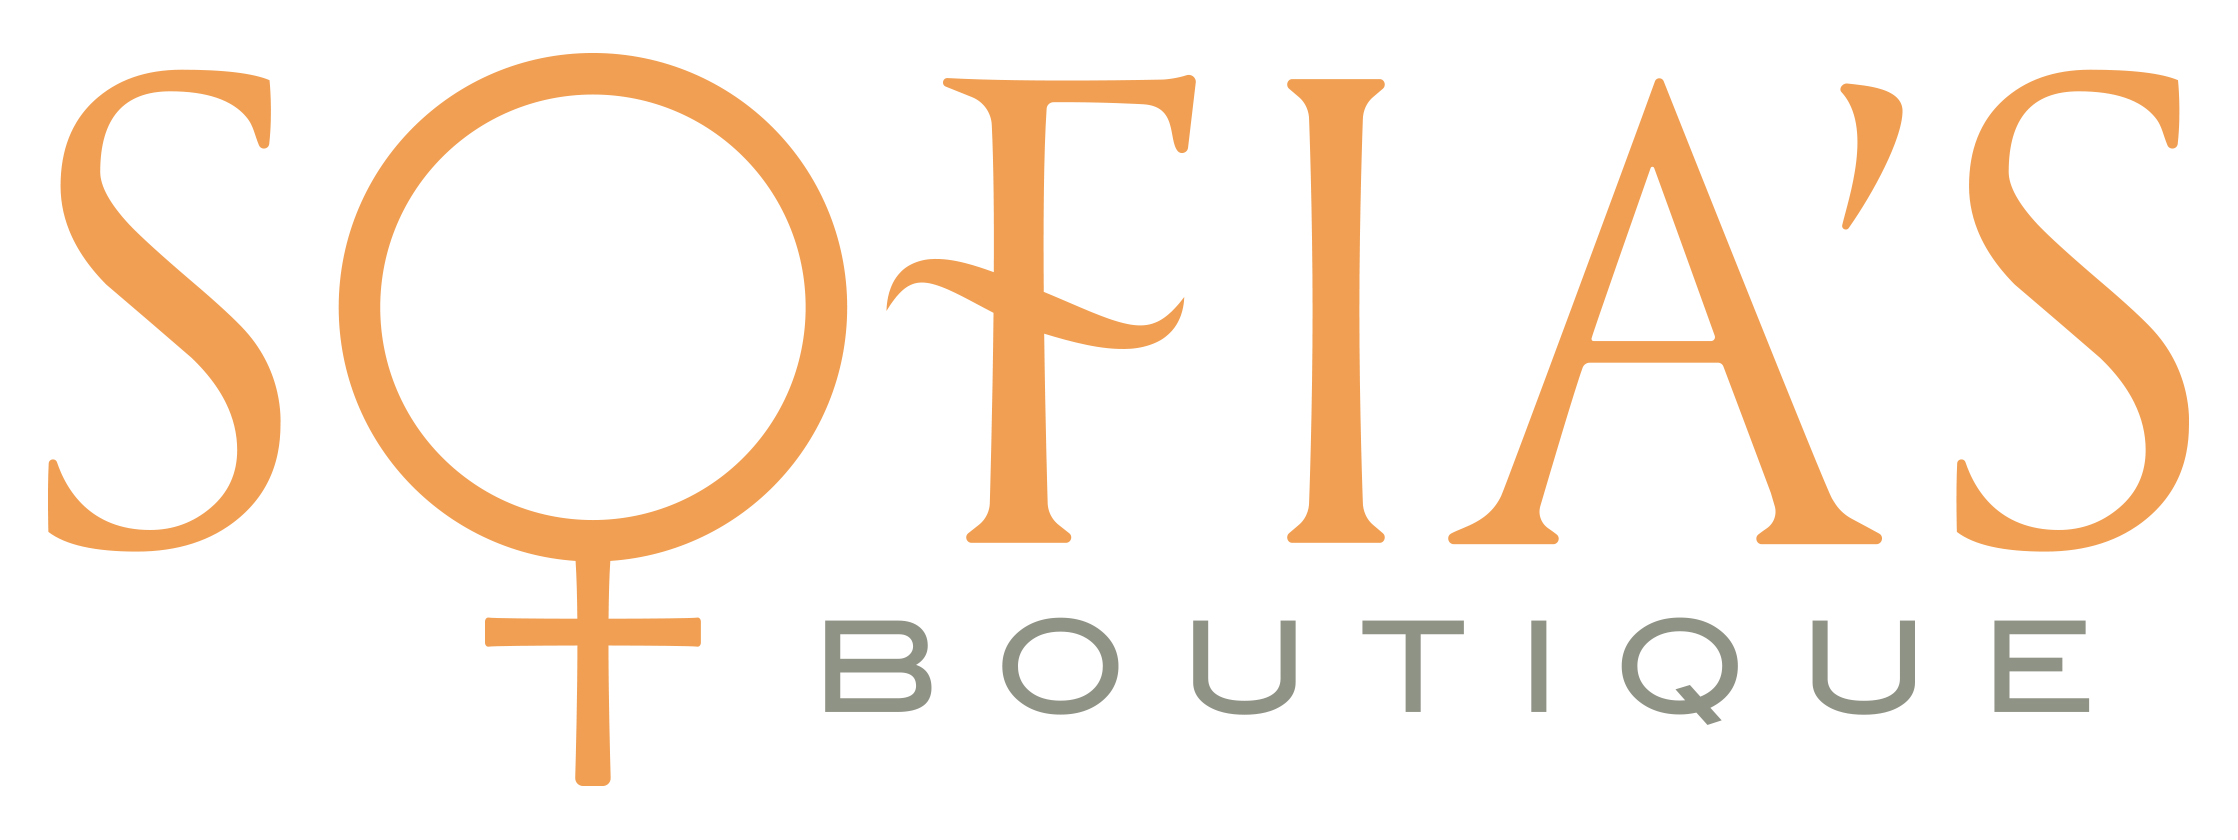 Sofia's Boutique, Inc